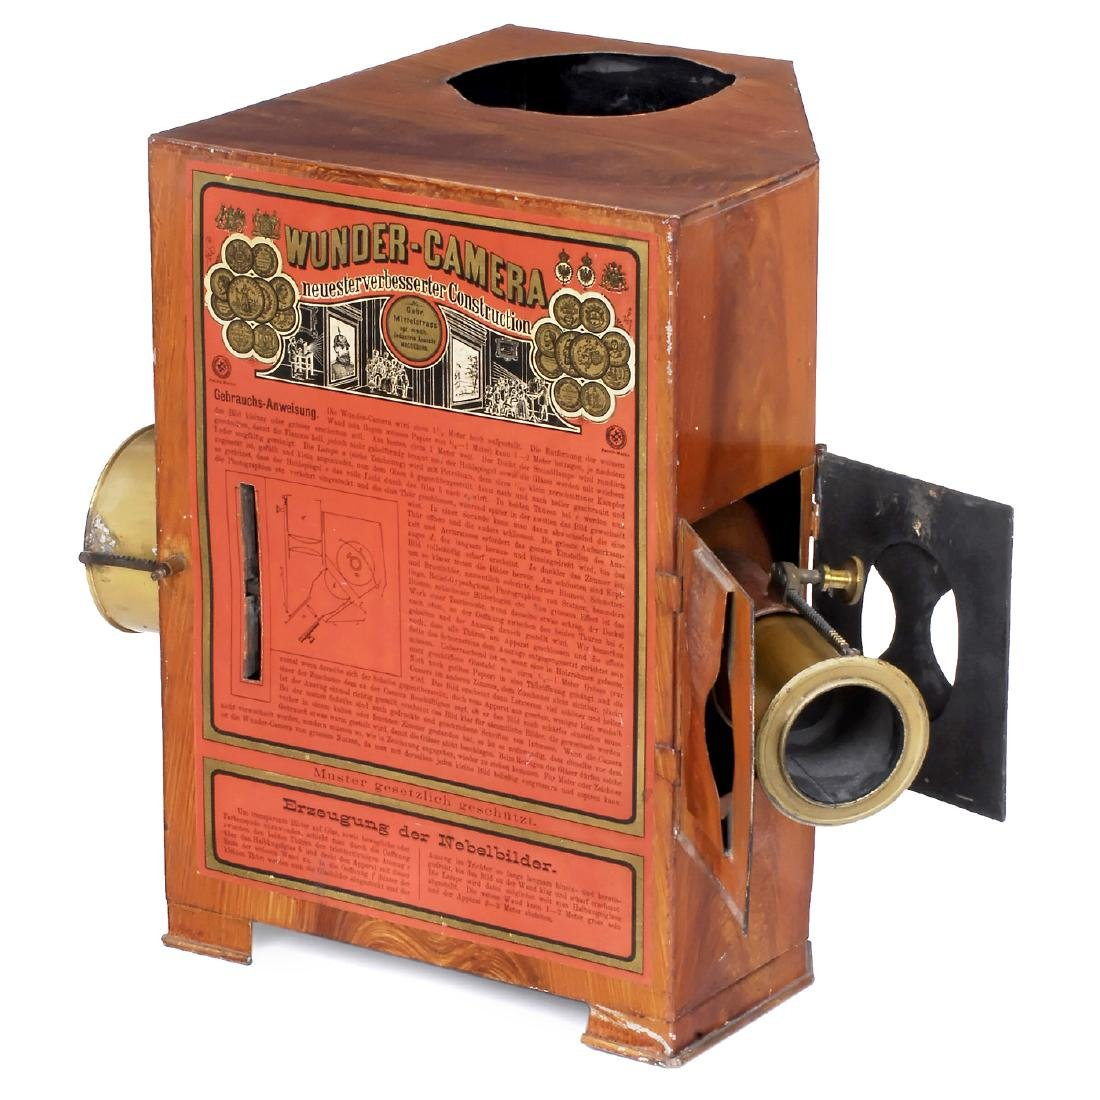 Wunder-Camera by Mittelstrass, c. 1890